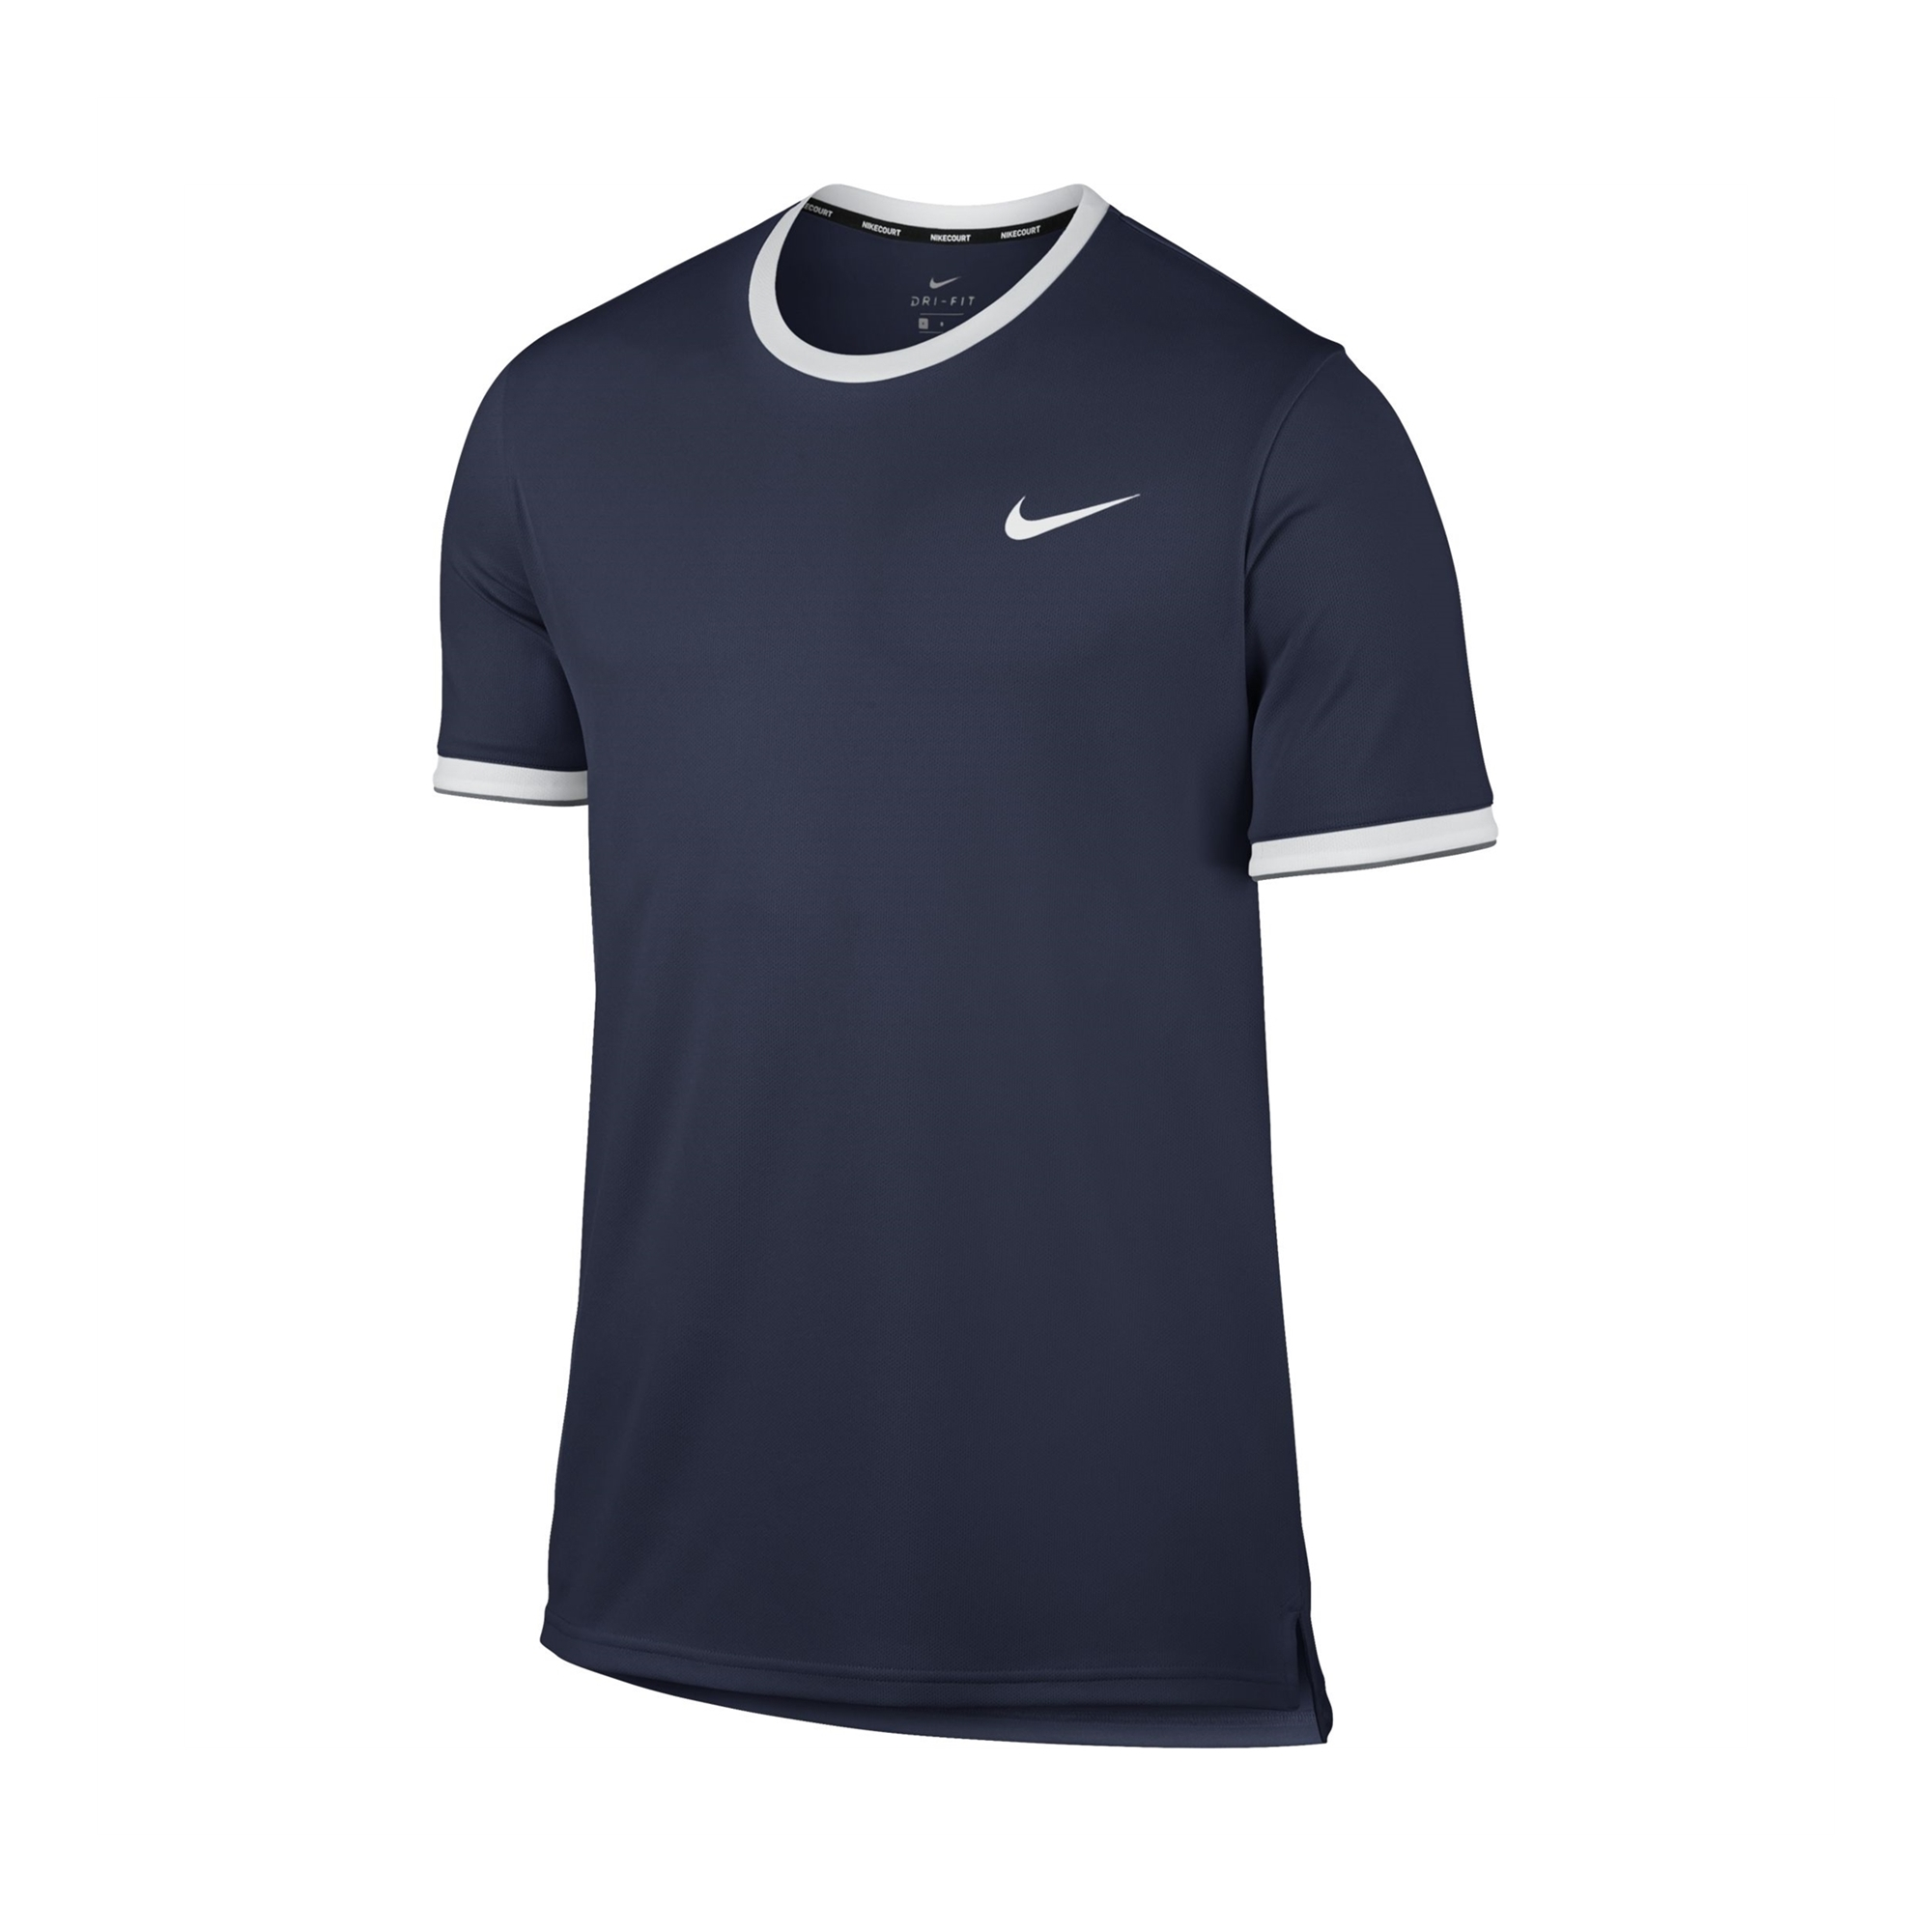 Nike Dry Top Team Navy/White S